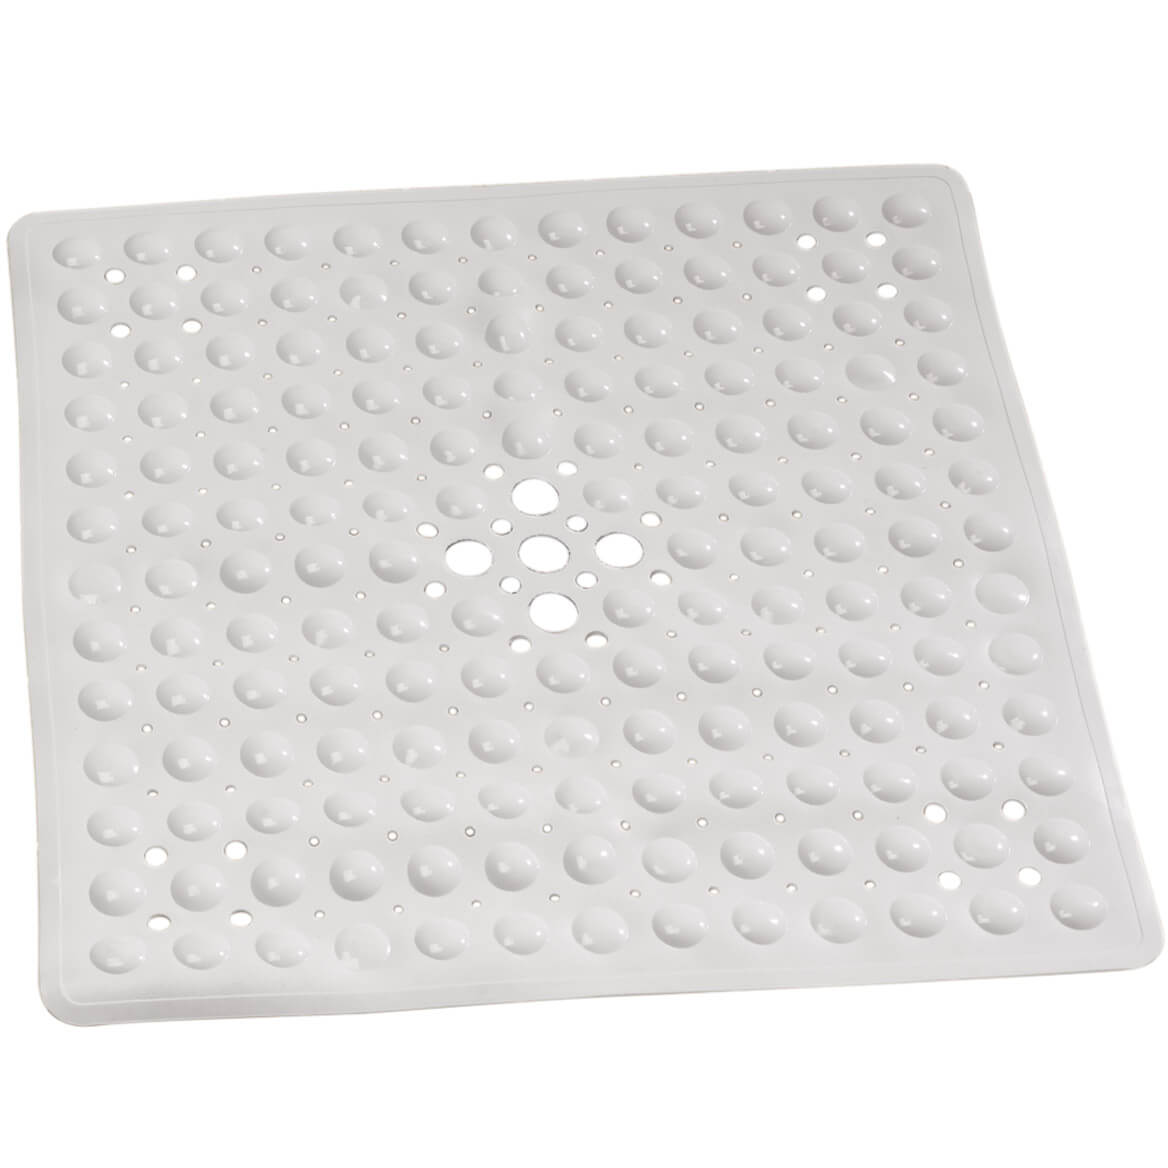 Shower Mat Square Shower Mat Shower Mat Vinyl Shower Mat Miles